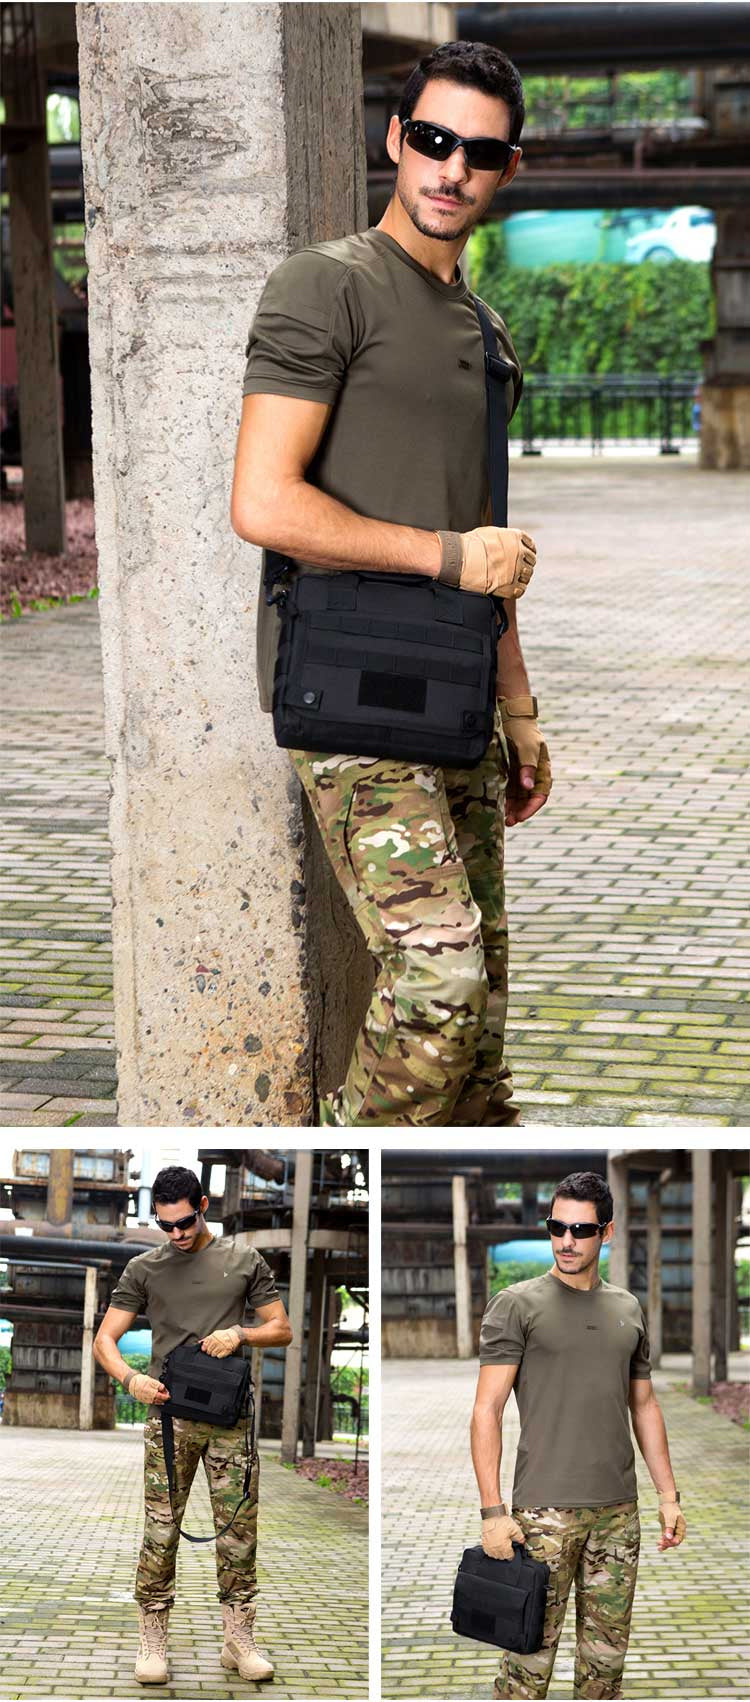 Tactical Messenger Bag Military Briefcase Nylon Waterproof Shoulder Bag - 5 Colors